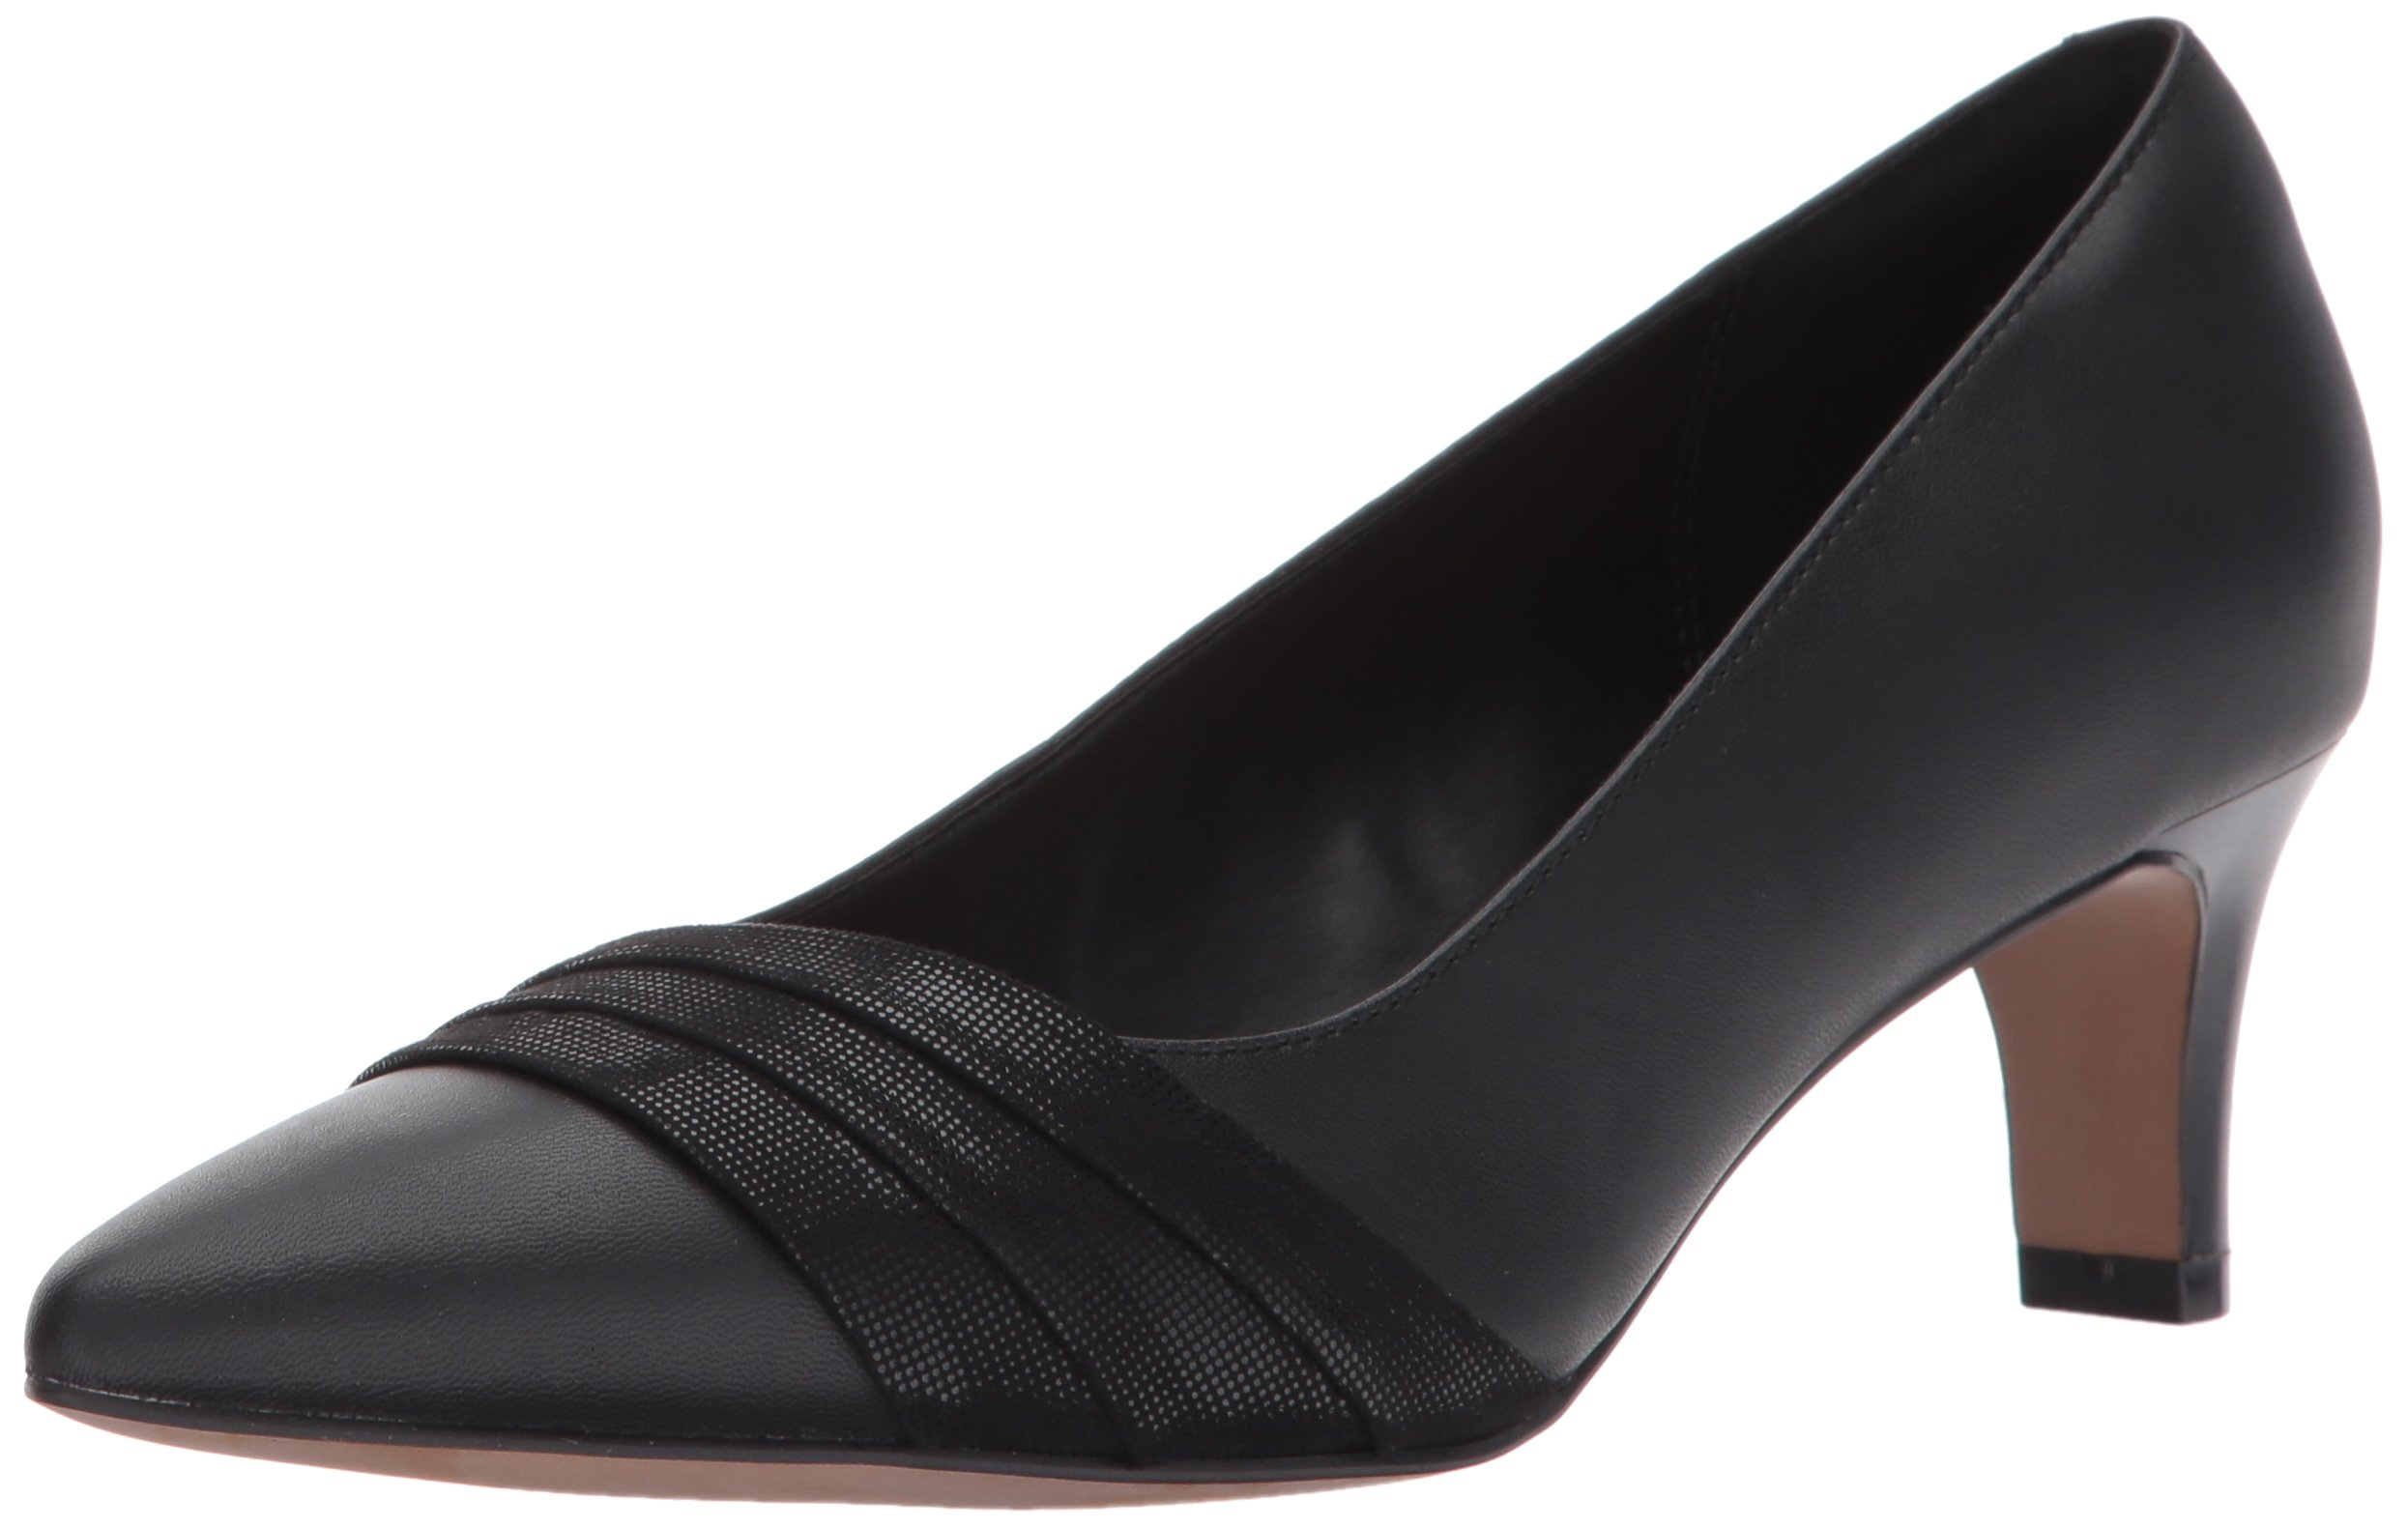 CLARKS Women's Crewso Madie Dress Pump, Black, 8 M US